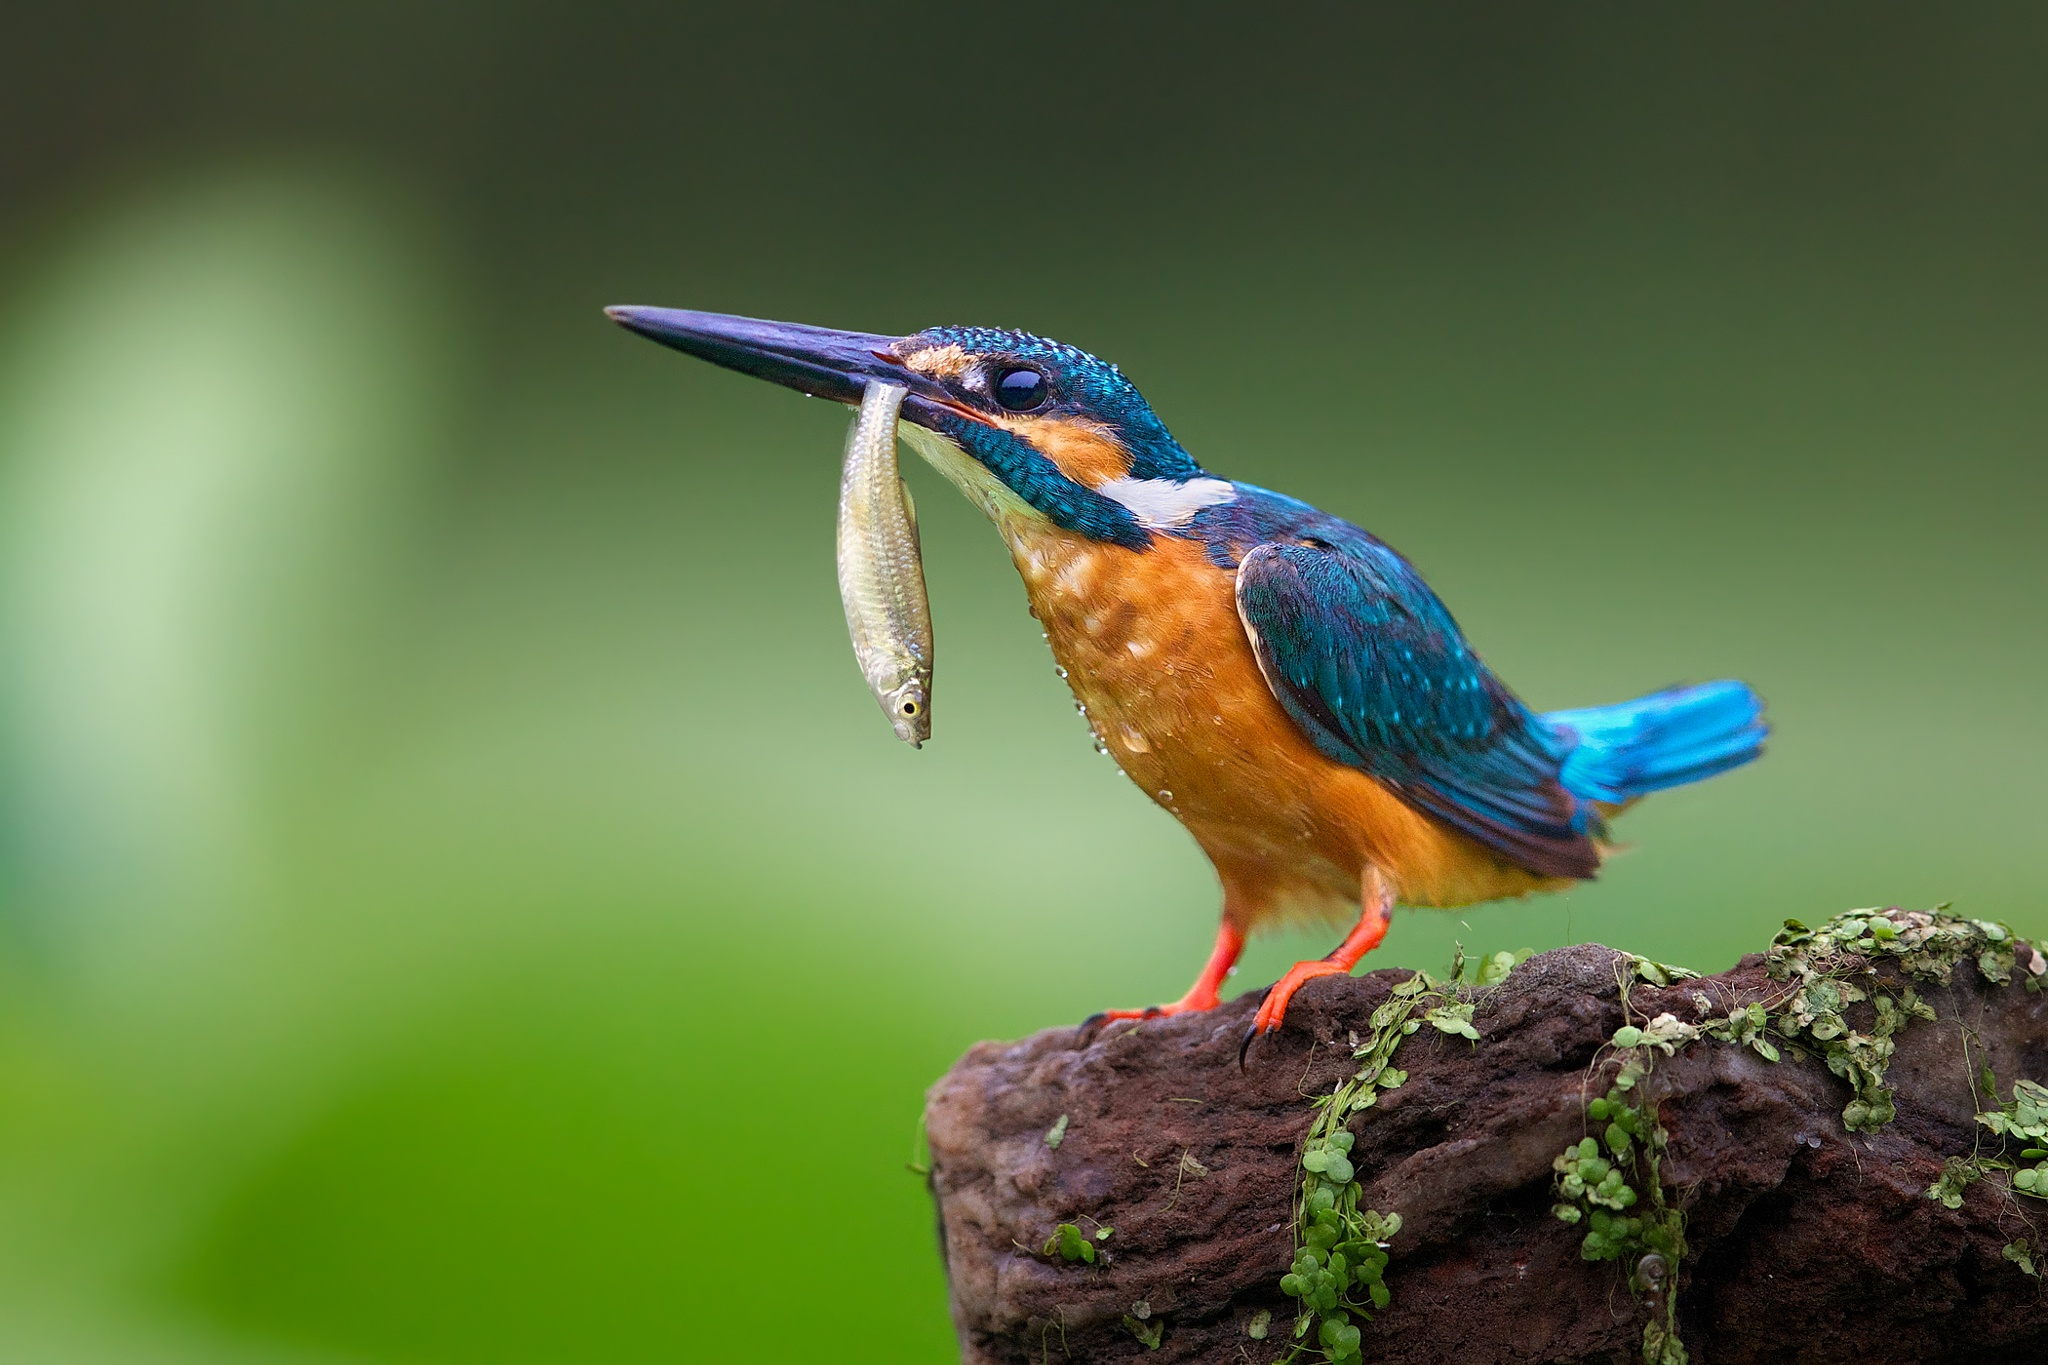 Kingfisher by Kant